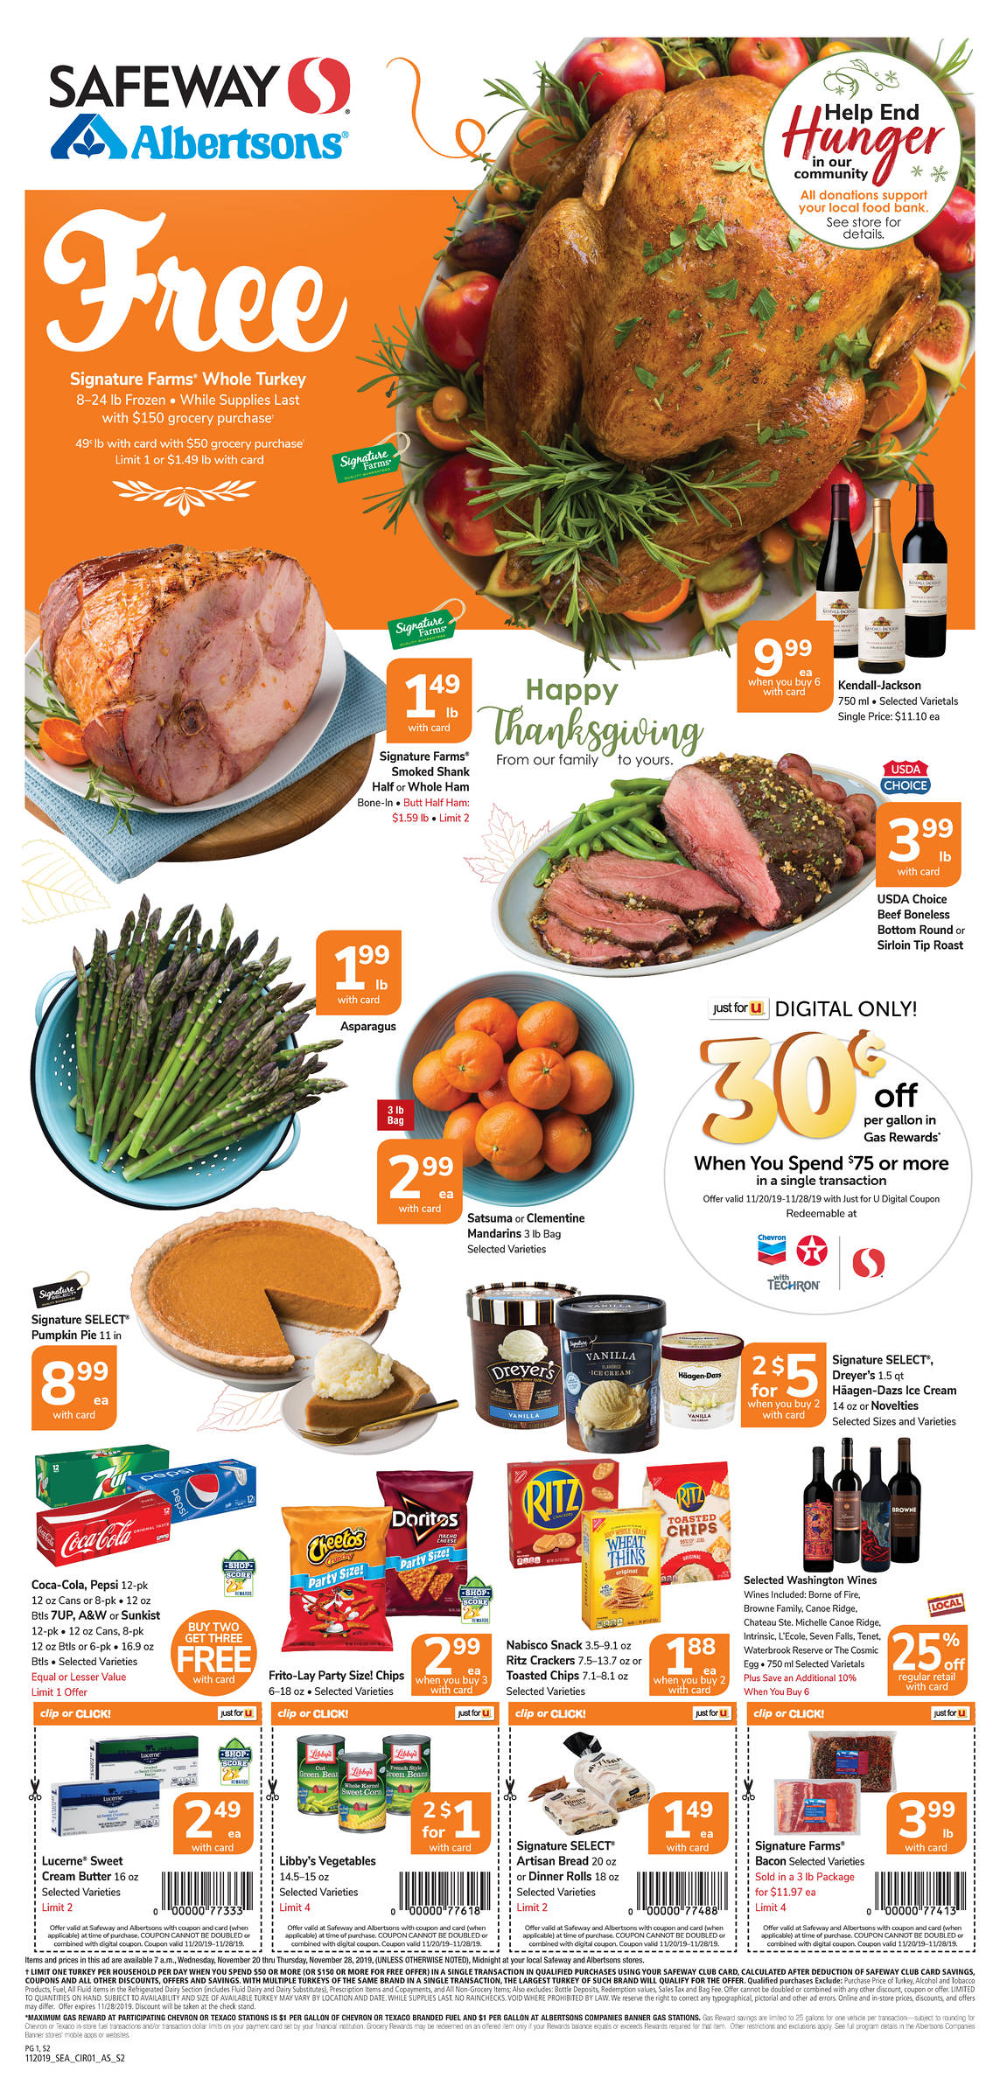 Spend 150 in one day for free turkey Browse the Weekly Ad